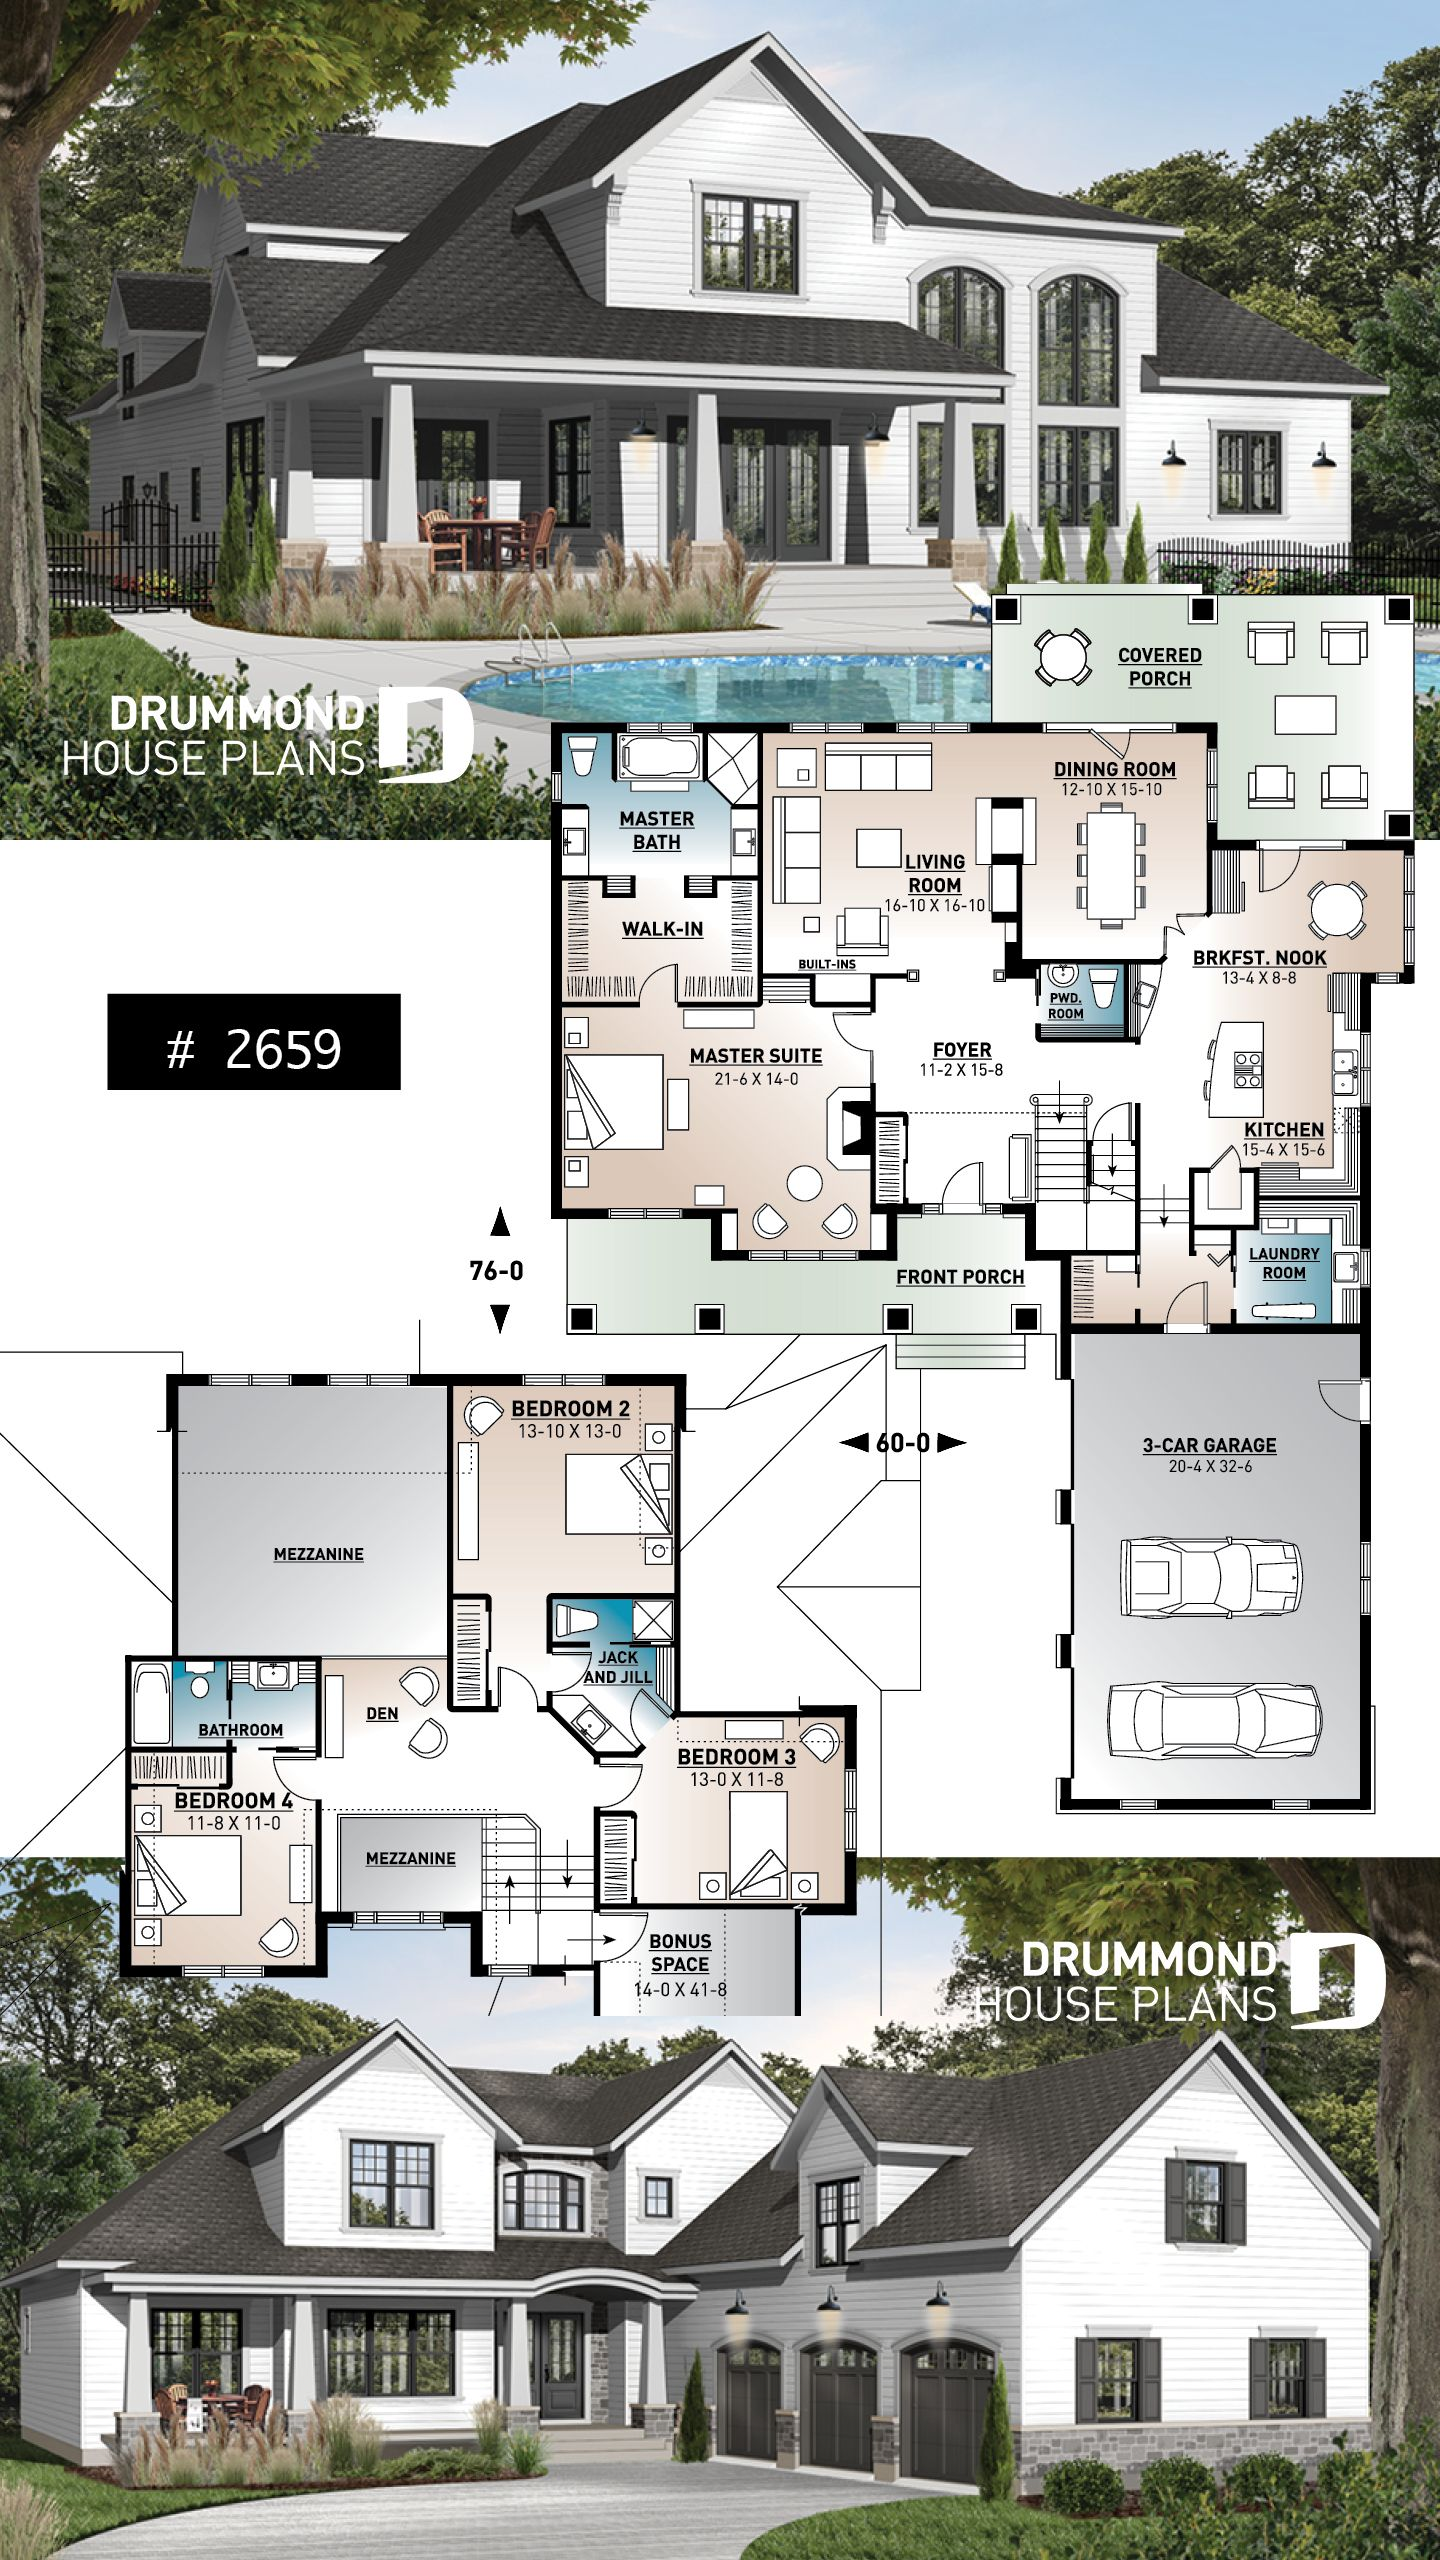 Pin by Mallory Lardin on If I buy a home.. (With images) | Sims house plans,  House blueprints, House plans